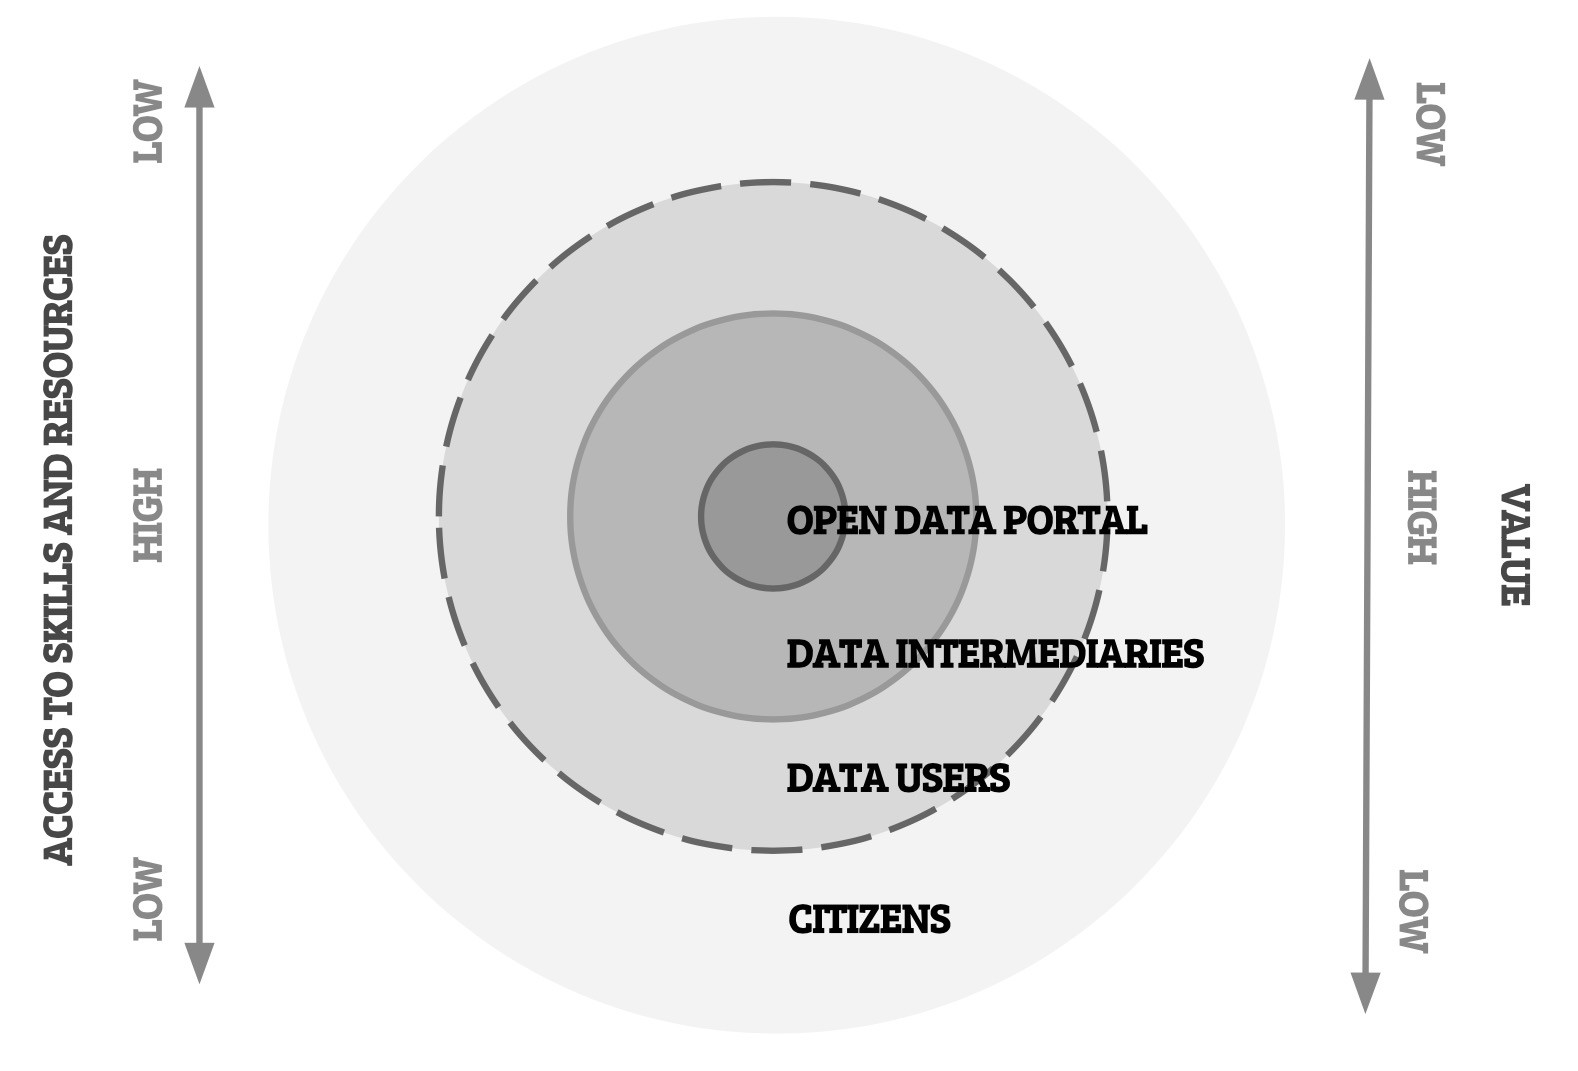 Open Data stakeholders